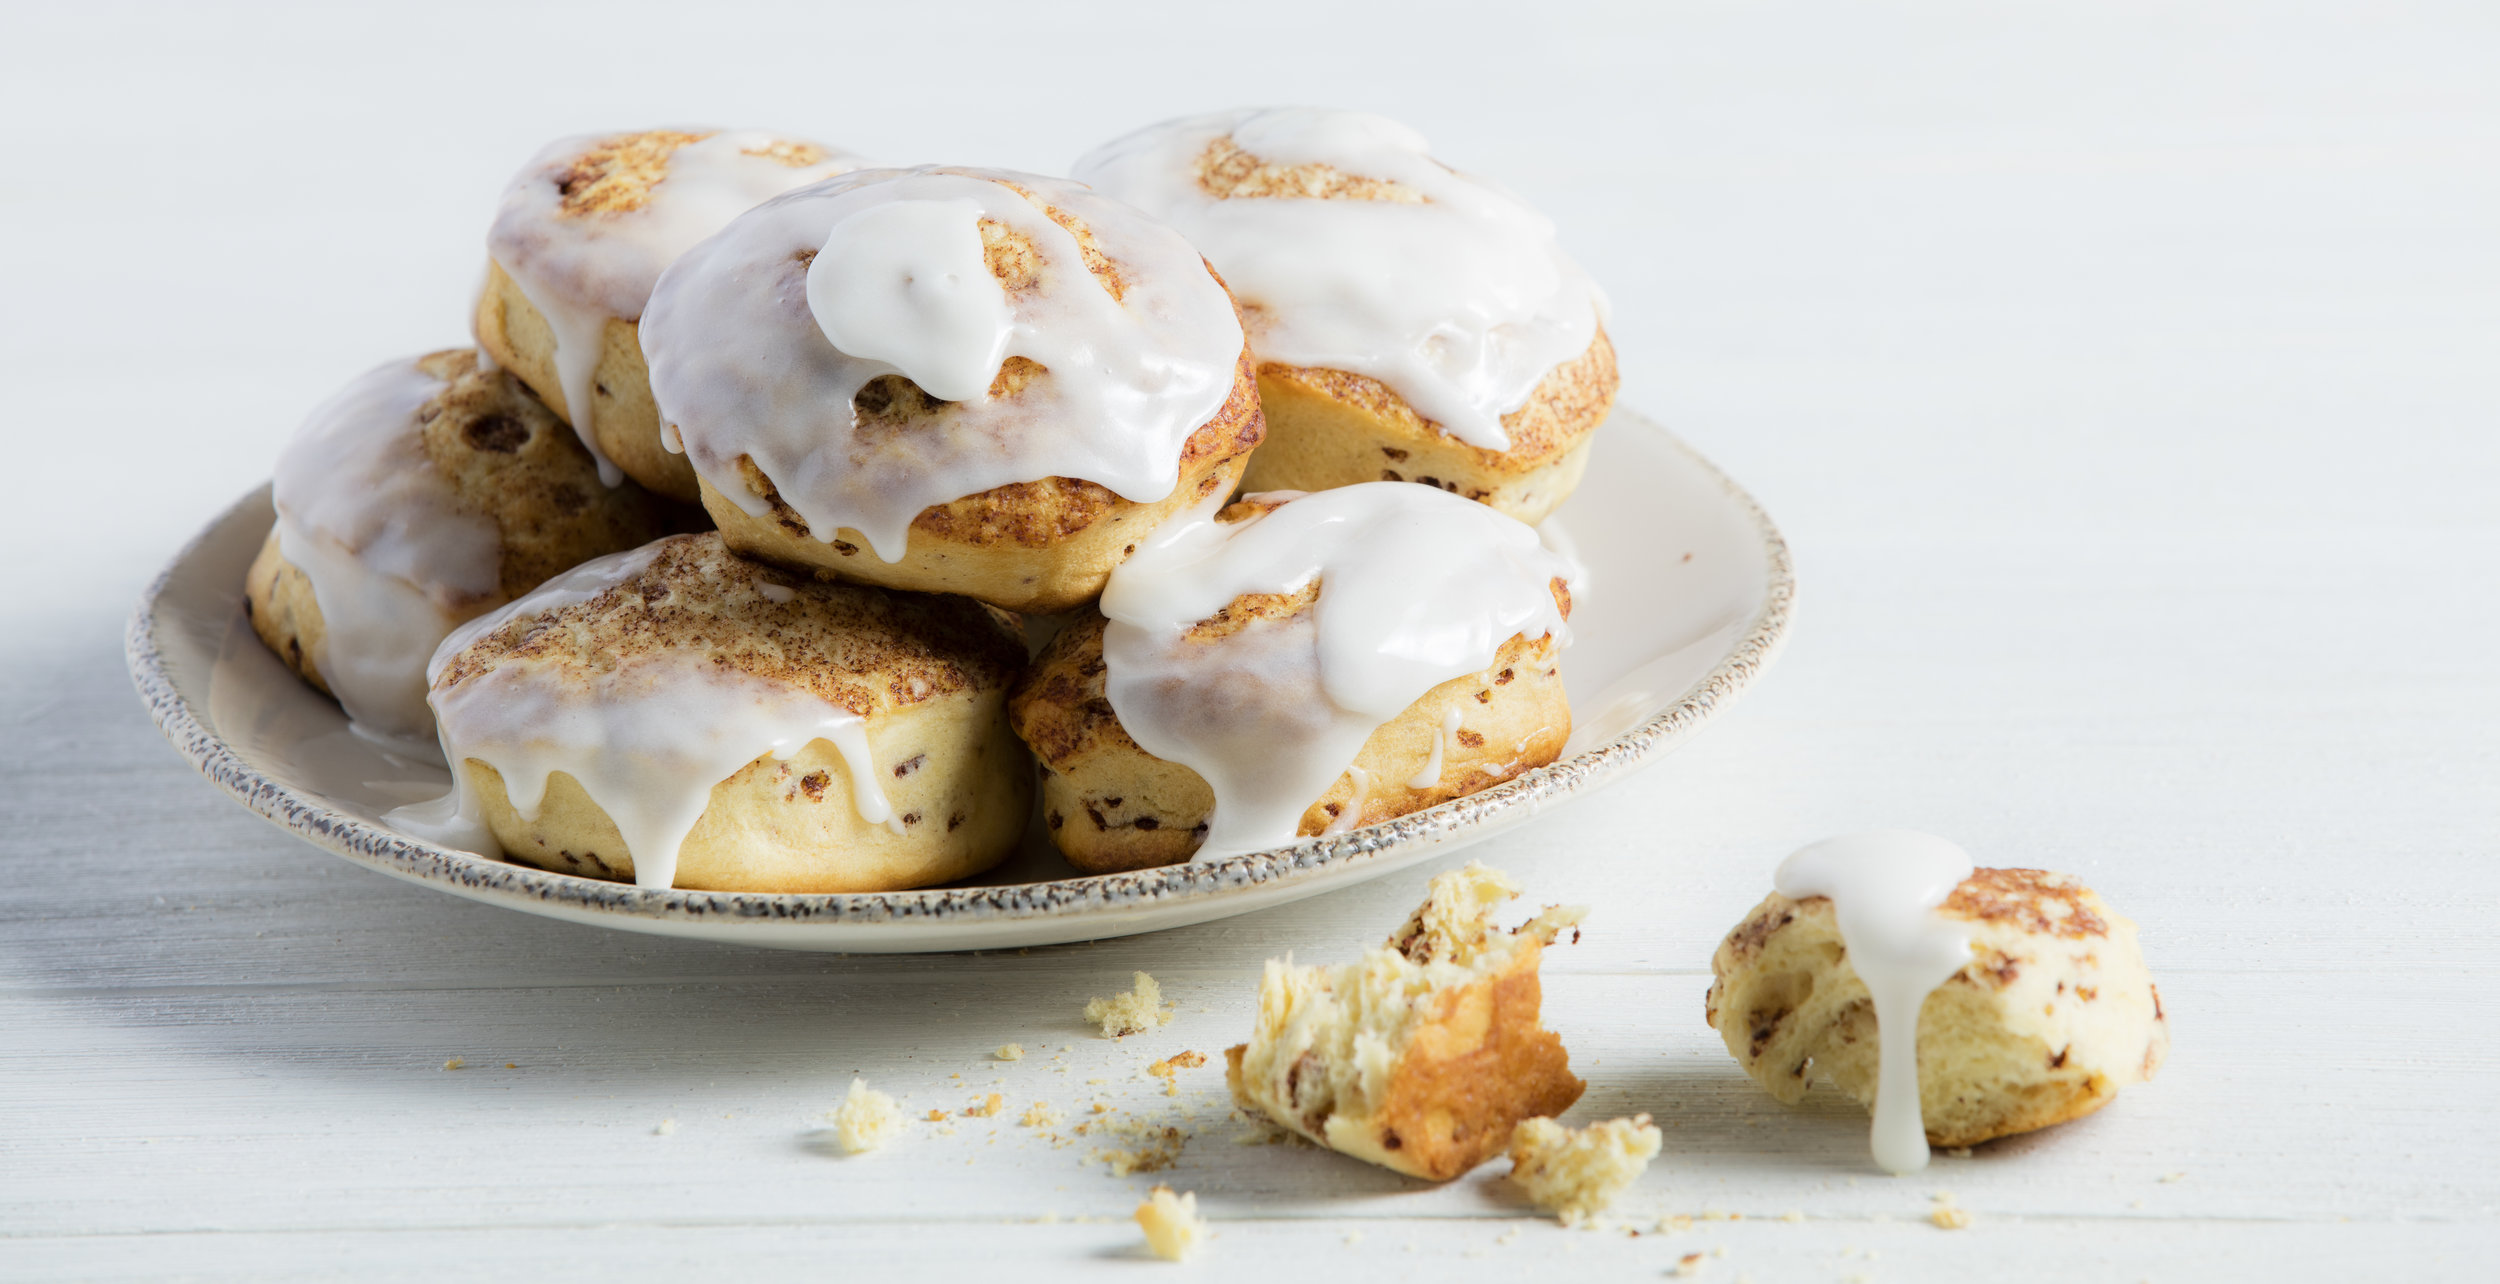 Cinnamon Scones with Melting Icing